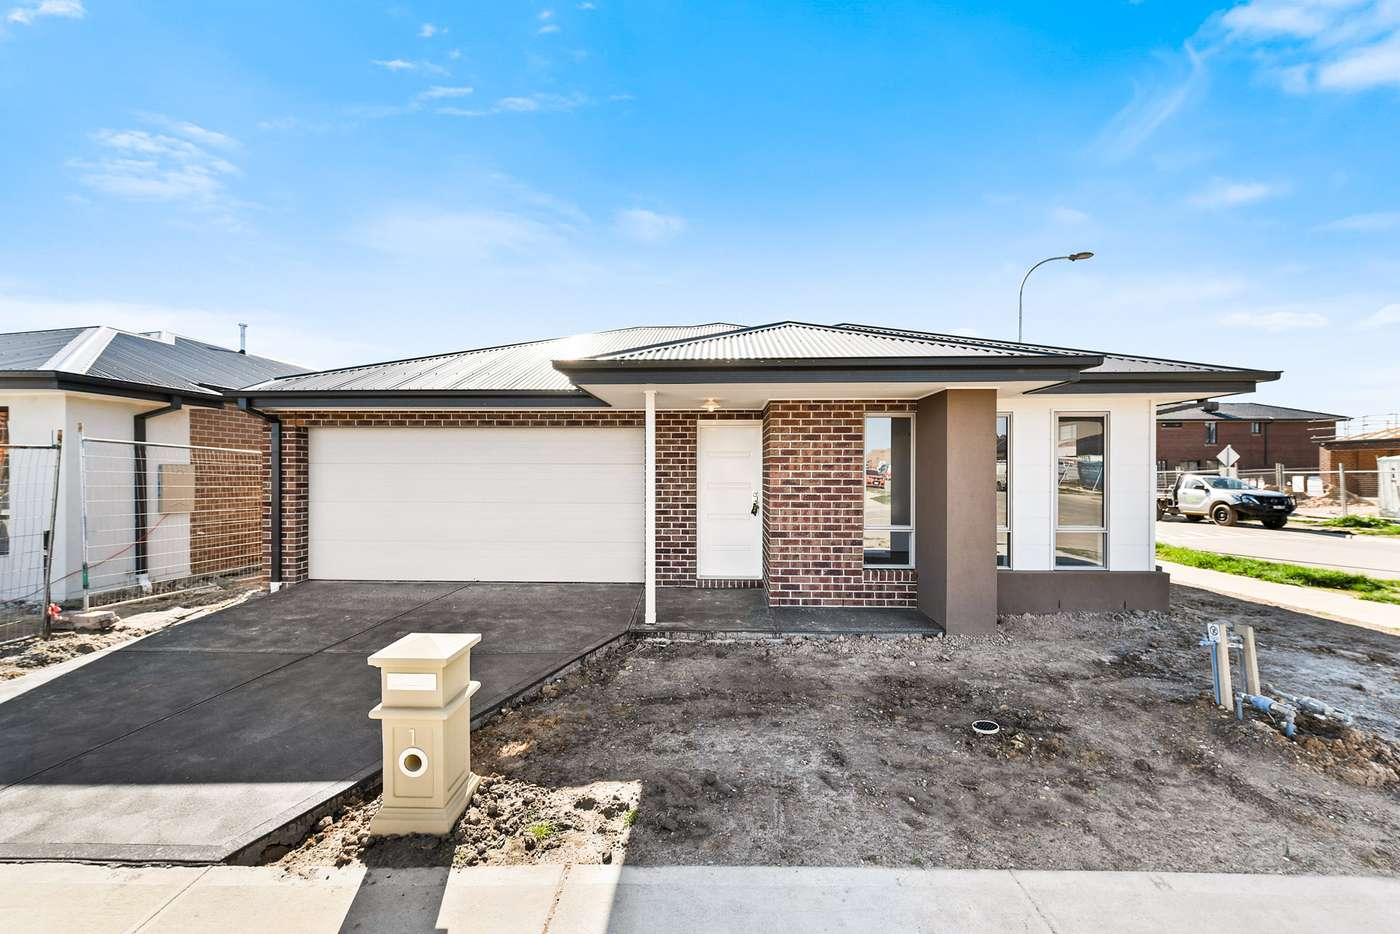 Main view of Homely house listing, 1 Serengeti Street, Clyde North VIC 3978